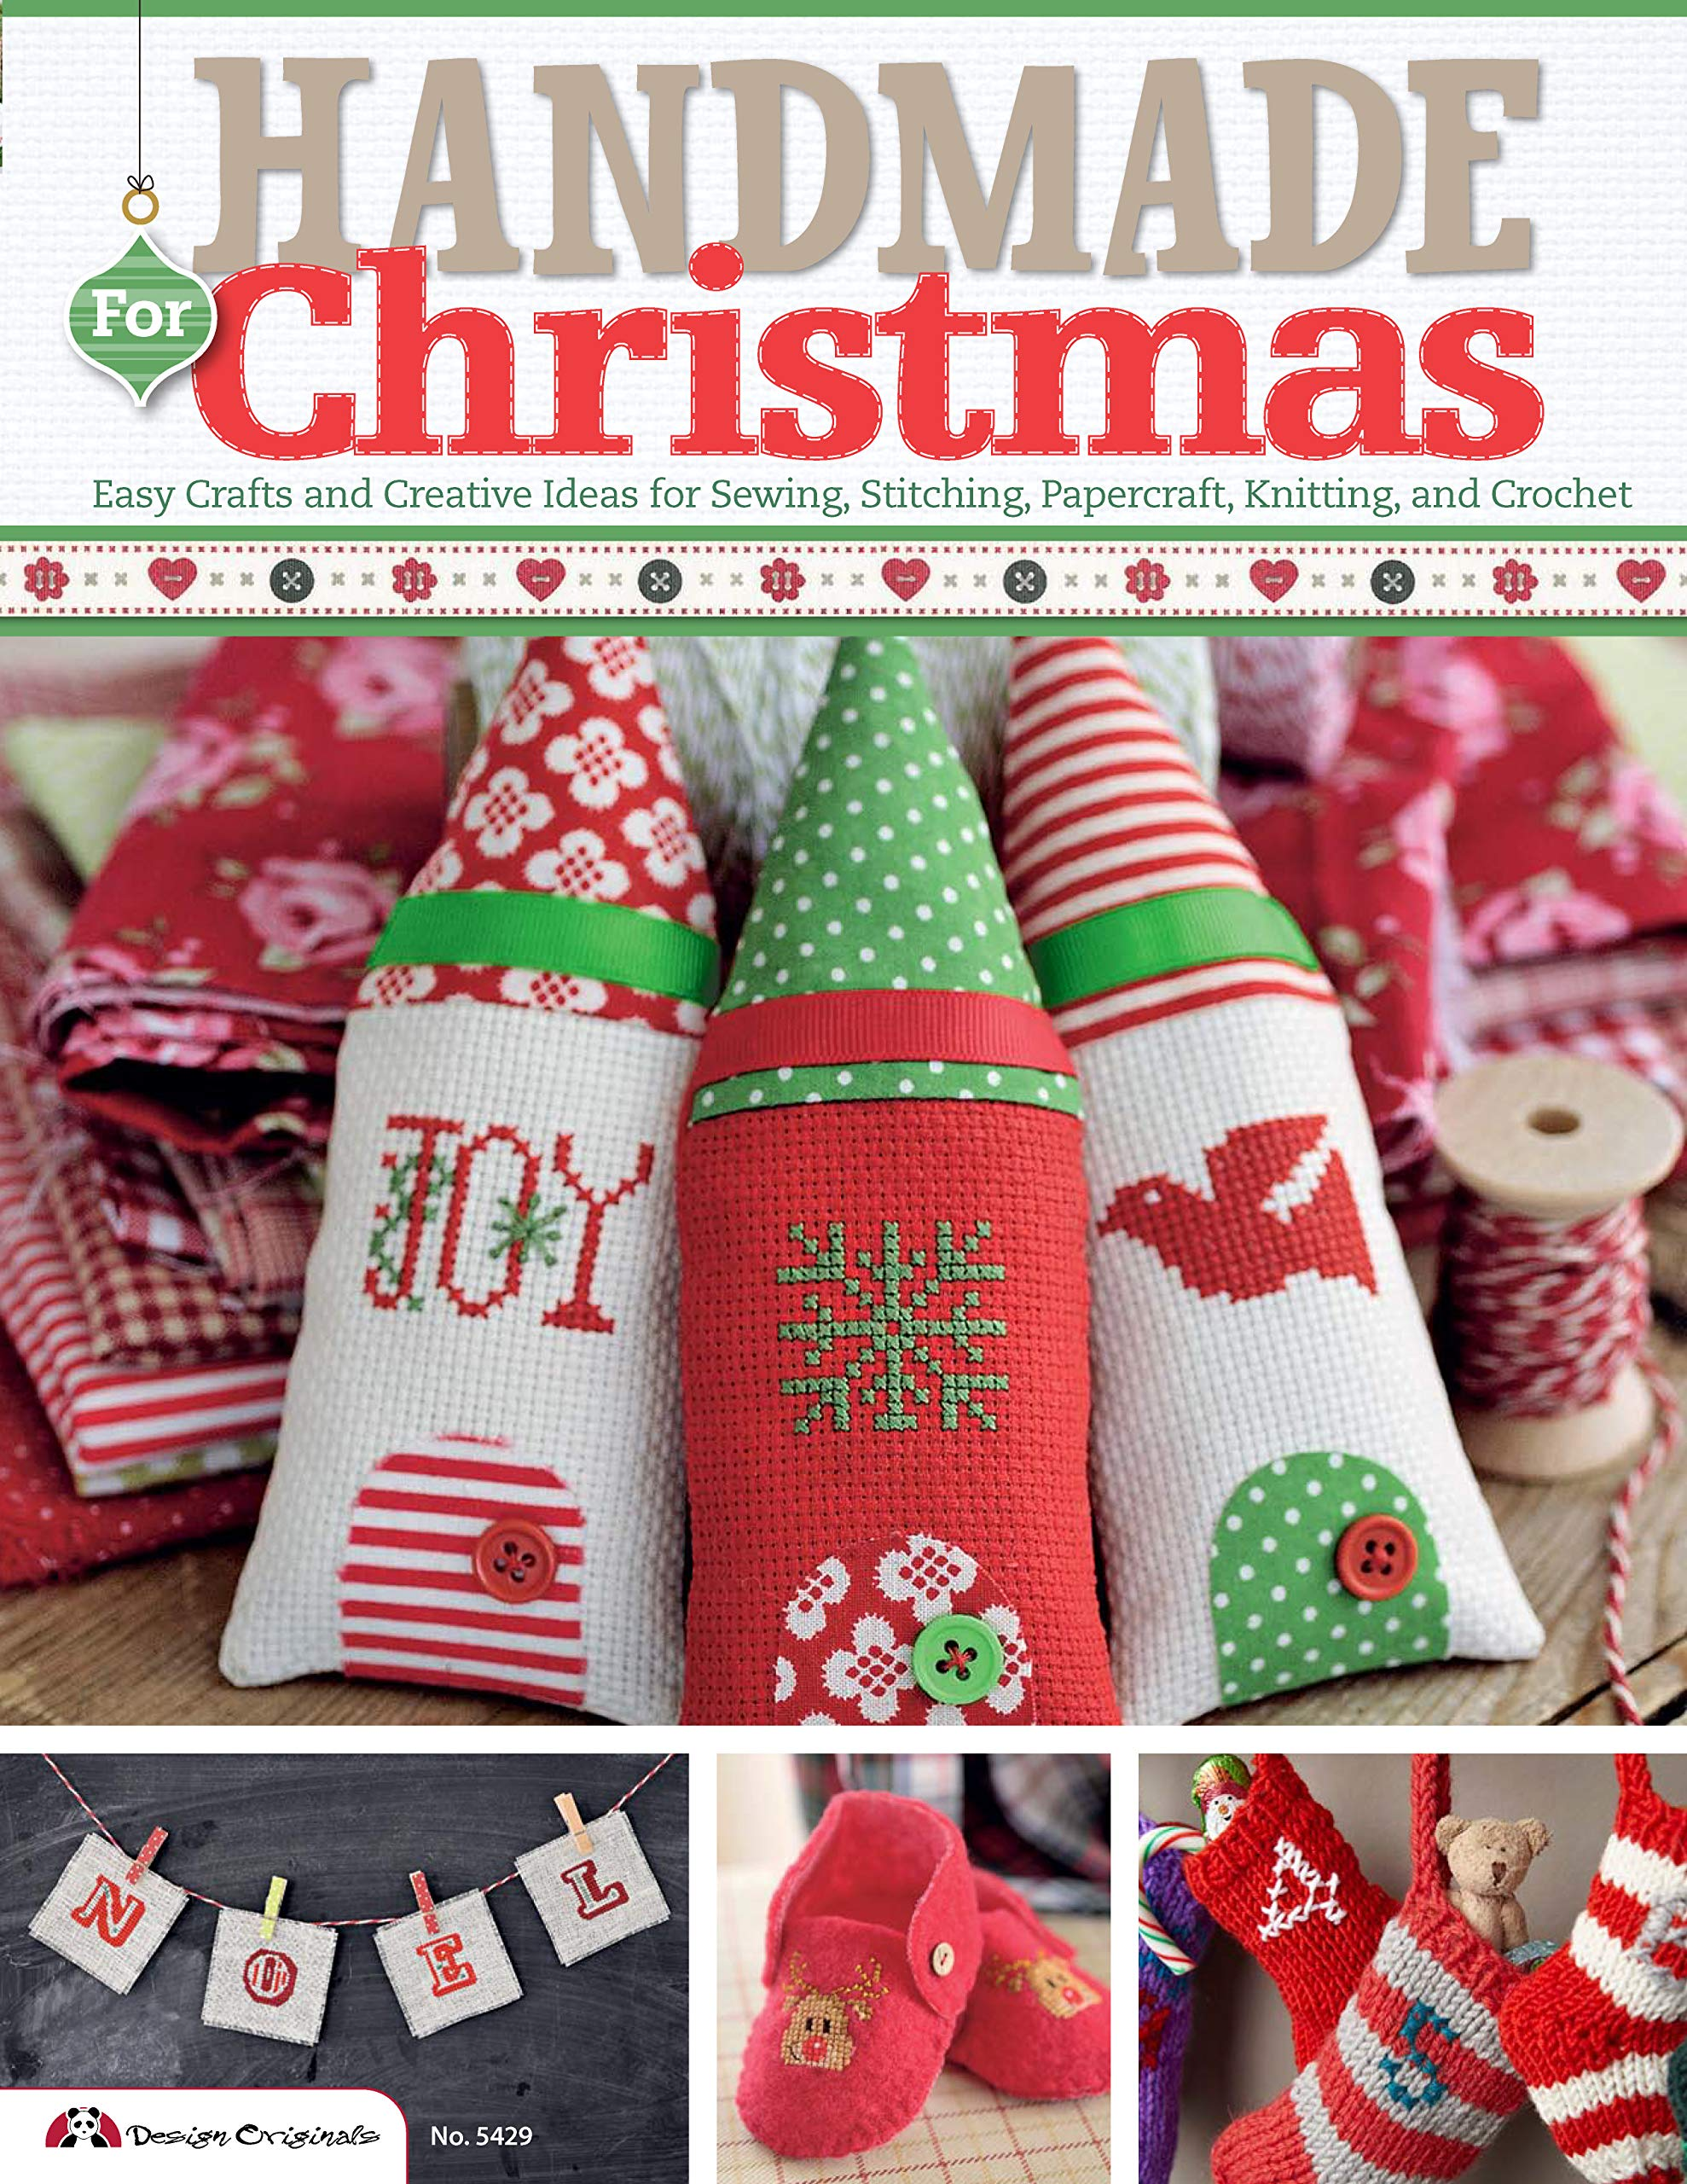 Handmade For Christmas Easy Crafts And Creative Ideas For Sewing Stitching Papercraft Knitting And Crochet Future Publishing Limited 9781574215083 Amazon Com Books